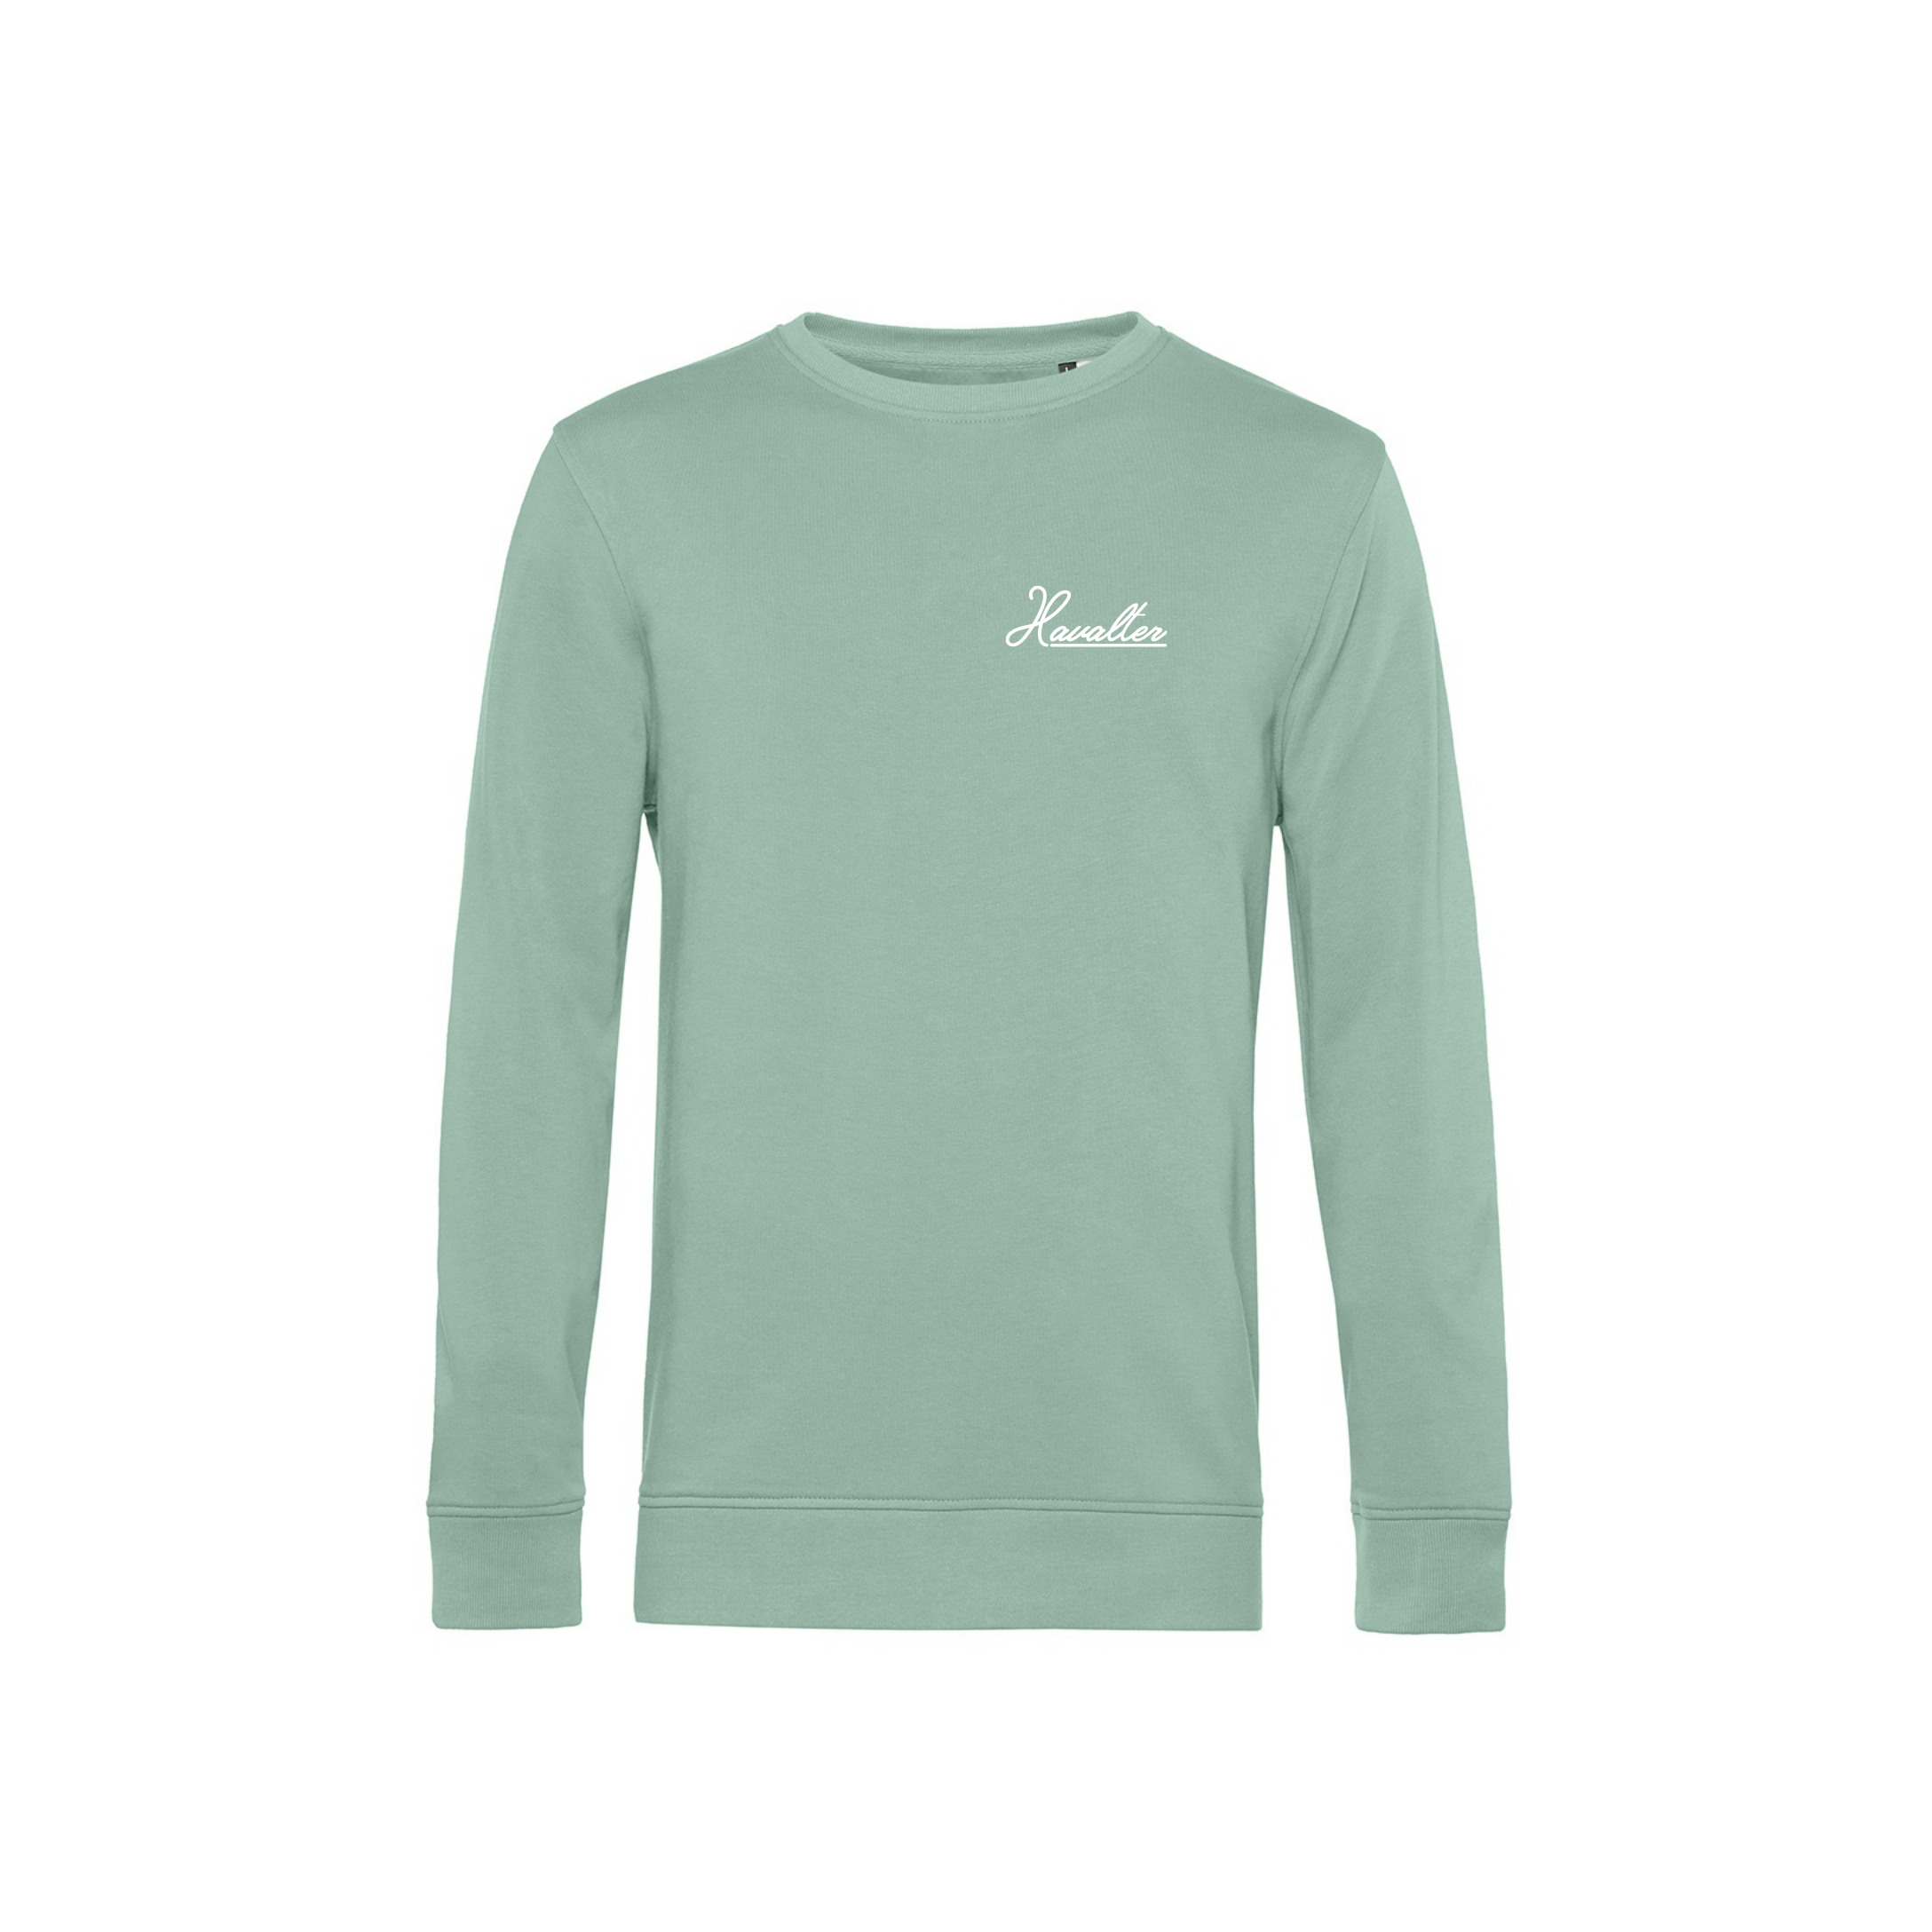 HAVALTER SWEATER MINT SMALL LOGO, UNISEX